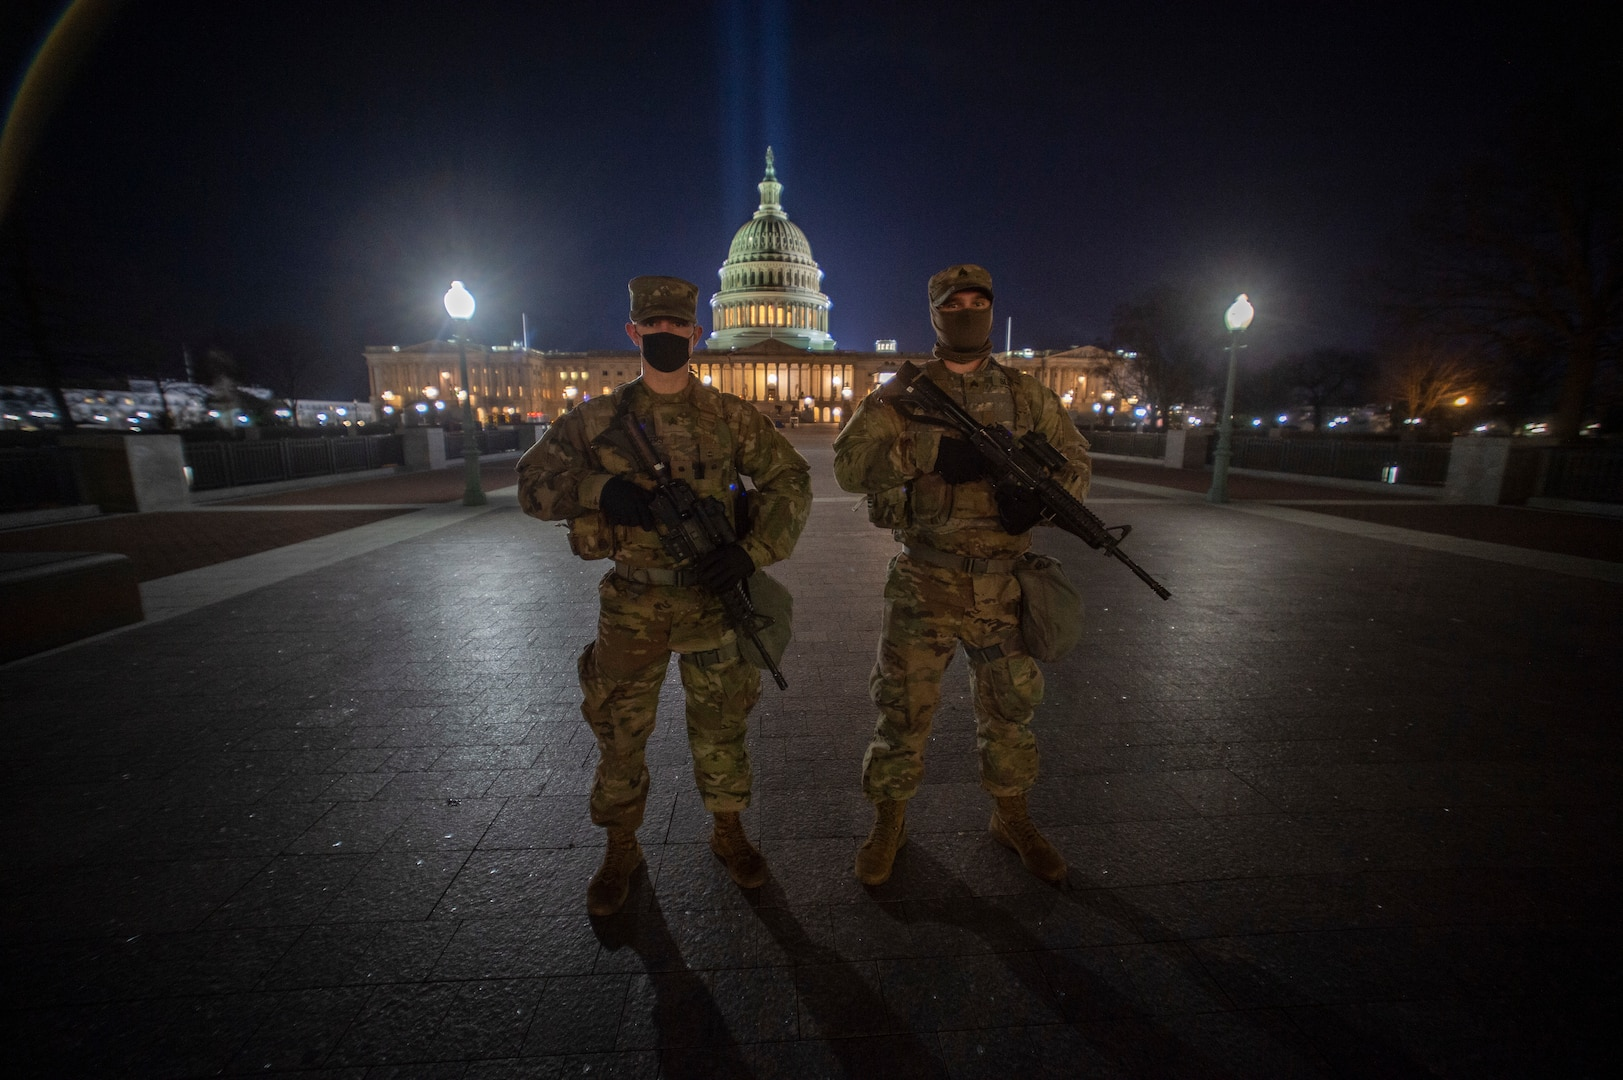 Oklahoma Army National Guard members and brothers Sgt. Kade Silvers, right, and Sgt. Korbin Silvers, both of Enid, Oklahoma, pose at the U.S. Capitol building before beginning their shift monitoring the inner ring of security around the Capitol, Jan. 19, 2021. At least 25,000 National Guard men and women have been authorized to conduct security, communication and logistical missions in support of federal and District authorities leading up to and through the 59th Presidential Inauguration. (U.S. National Guard photo by Sgt. Anthony Jones)